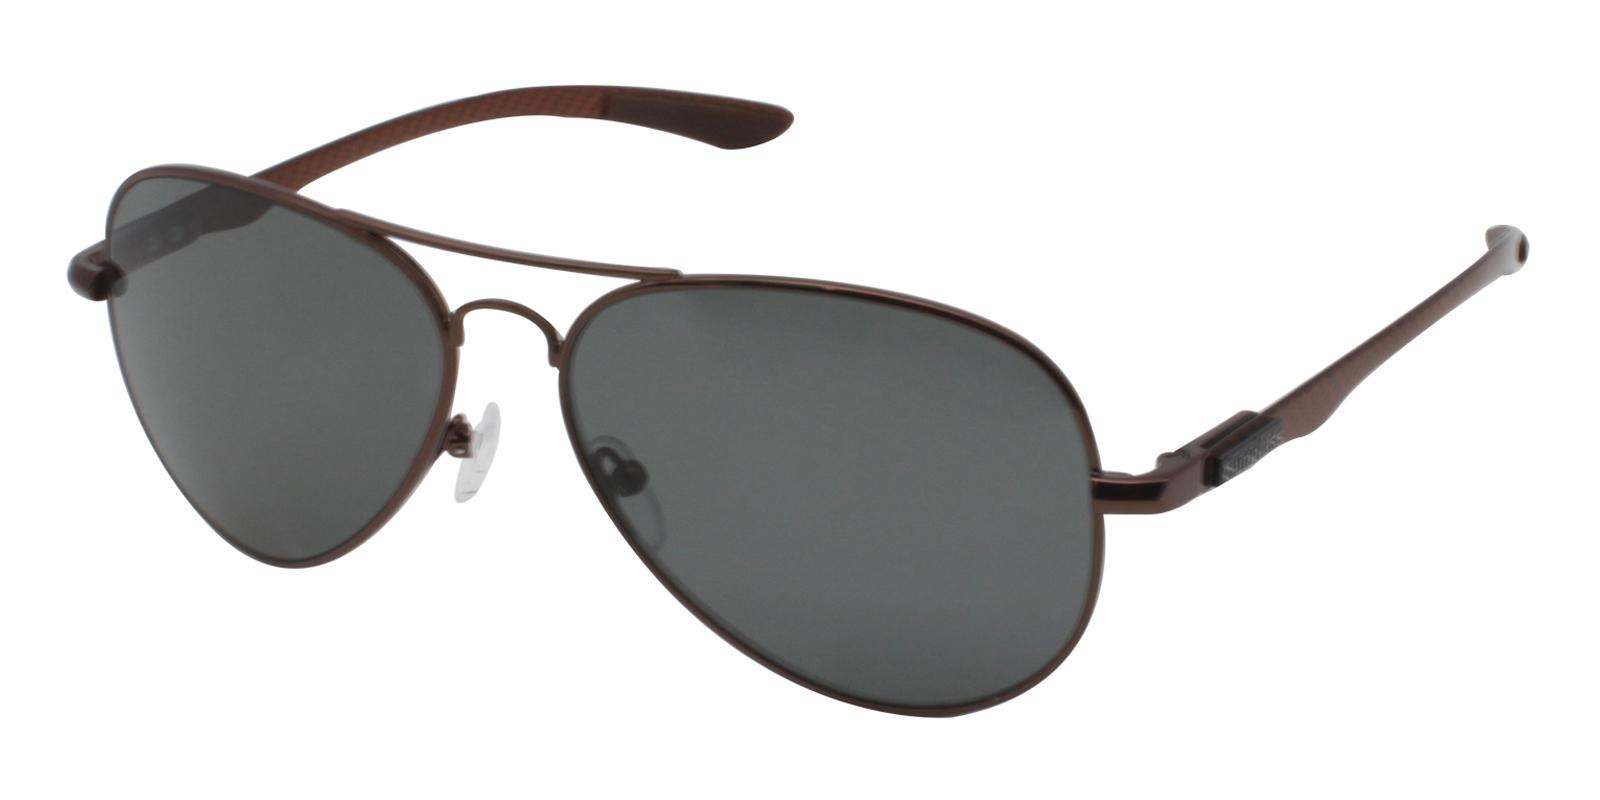 Logan Brown Metal NosePads , Sunglasses Frames from ABBE Glasses